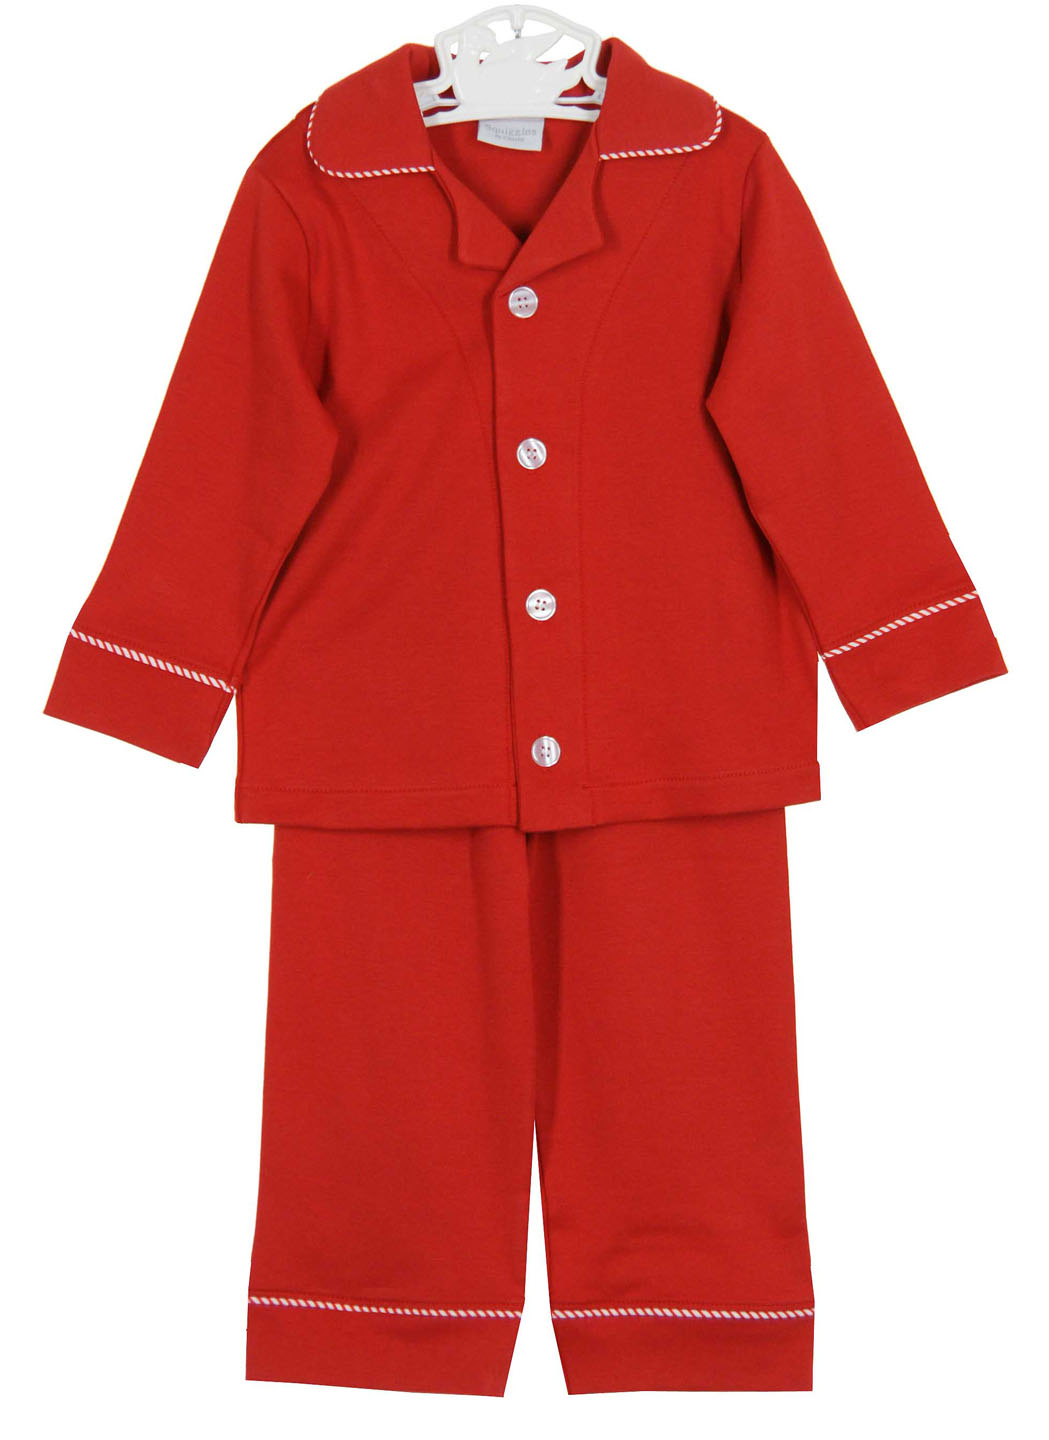 Squiggles Monogrammable Red Pima Cotton Knit Pajamas With